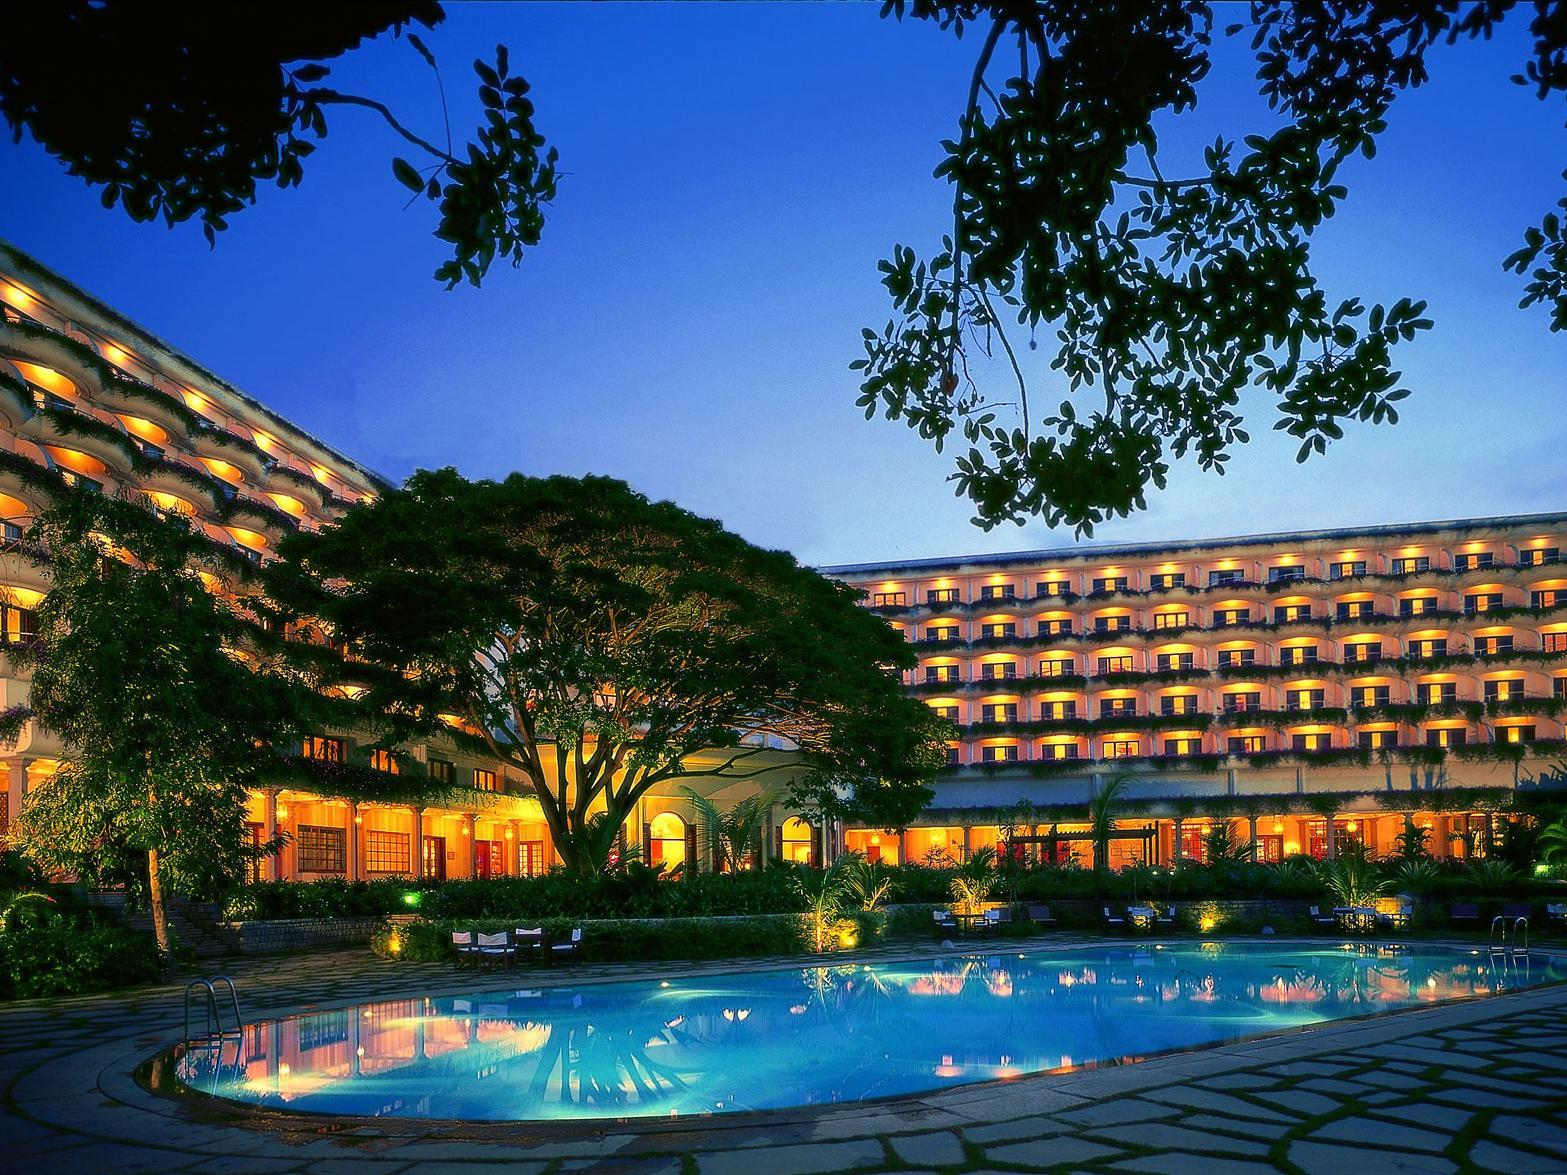 The Oberoi Bangalore - Hotel and accommodation in India in Bengaluru / Bangalore